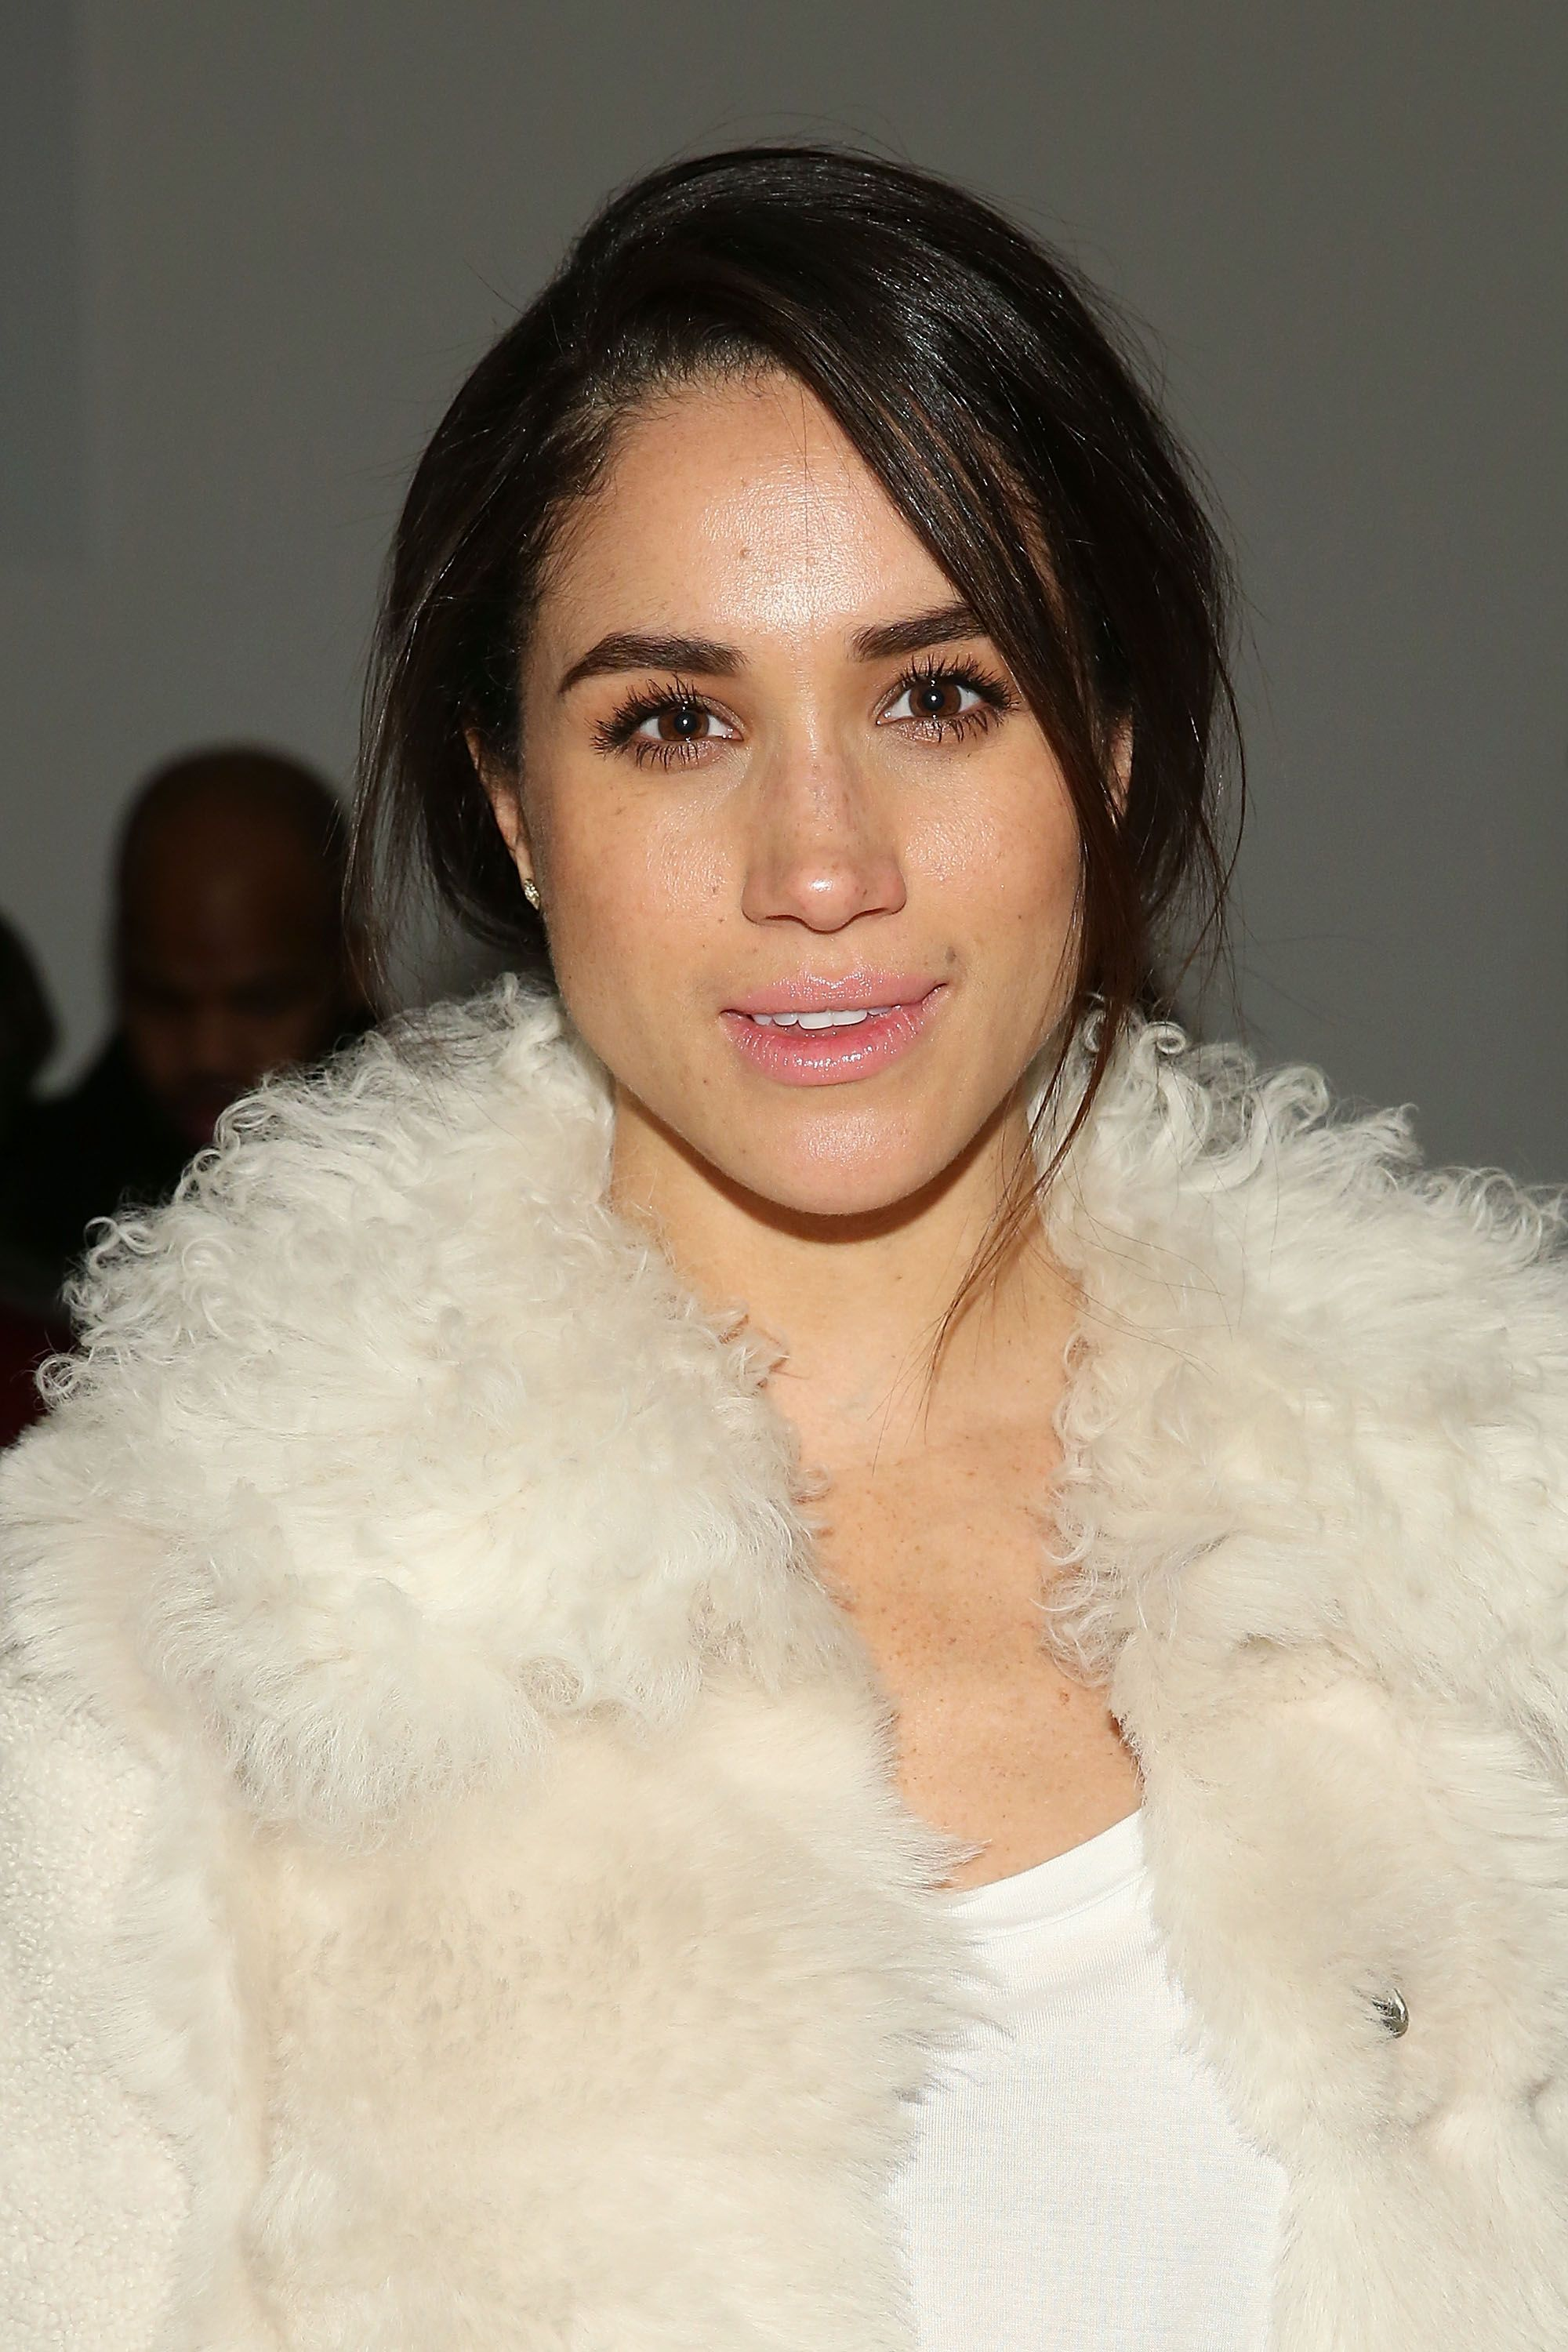 Meghan Markle attends REEBOK #HonorYourDays at Reebok Headquarters on April 28, 2016 in Canton, Massachusetts. | Source: Getty Images